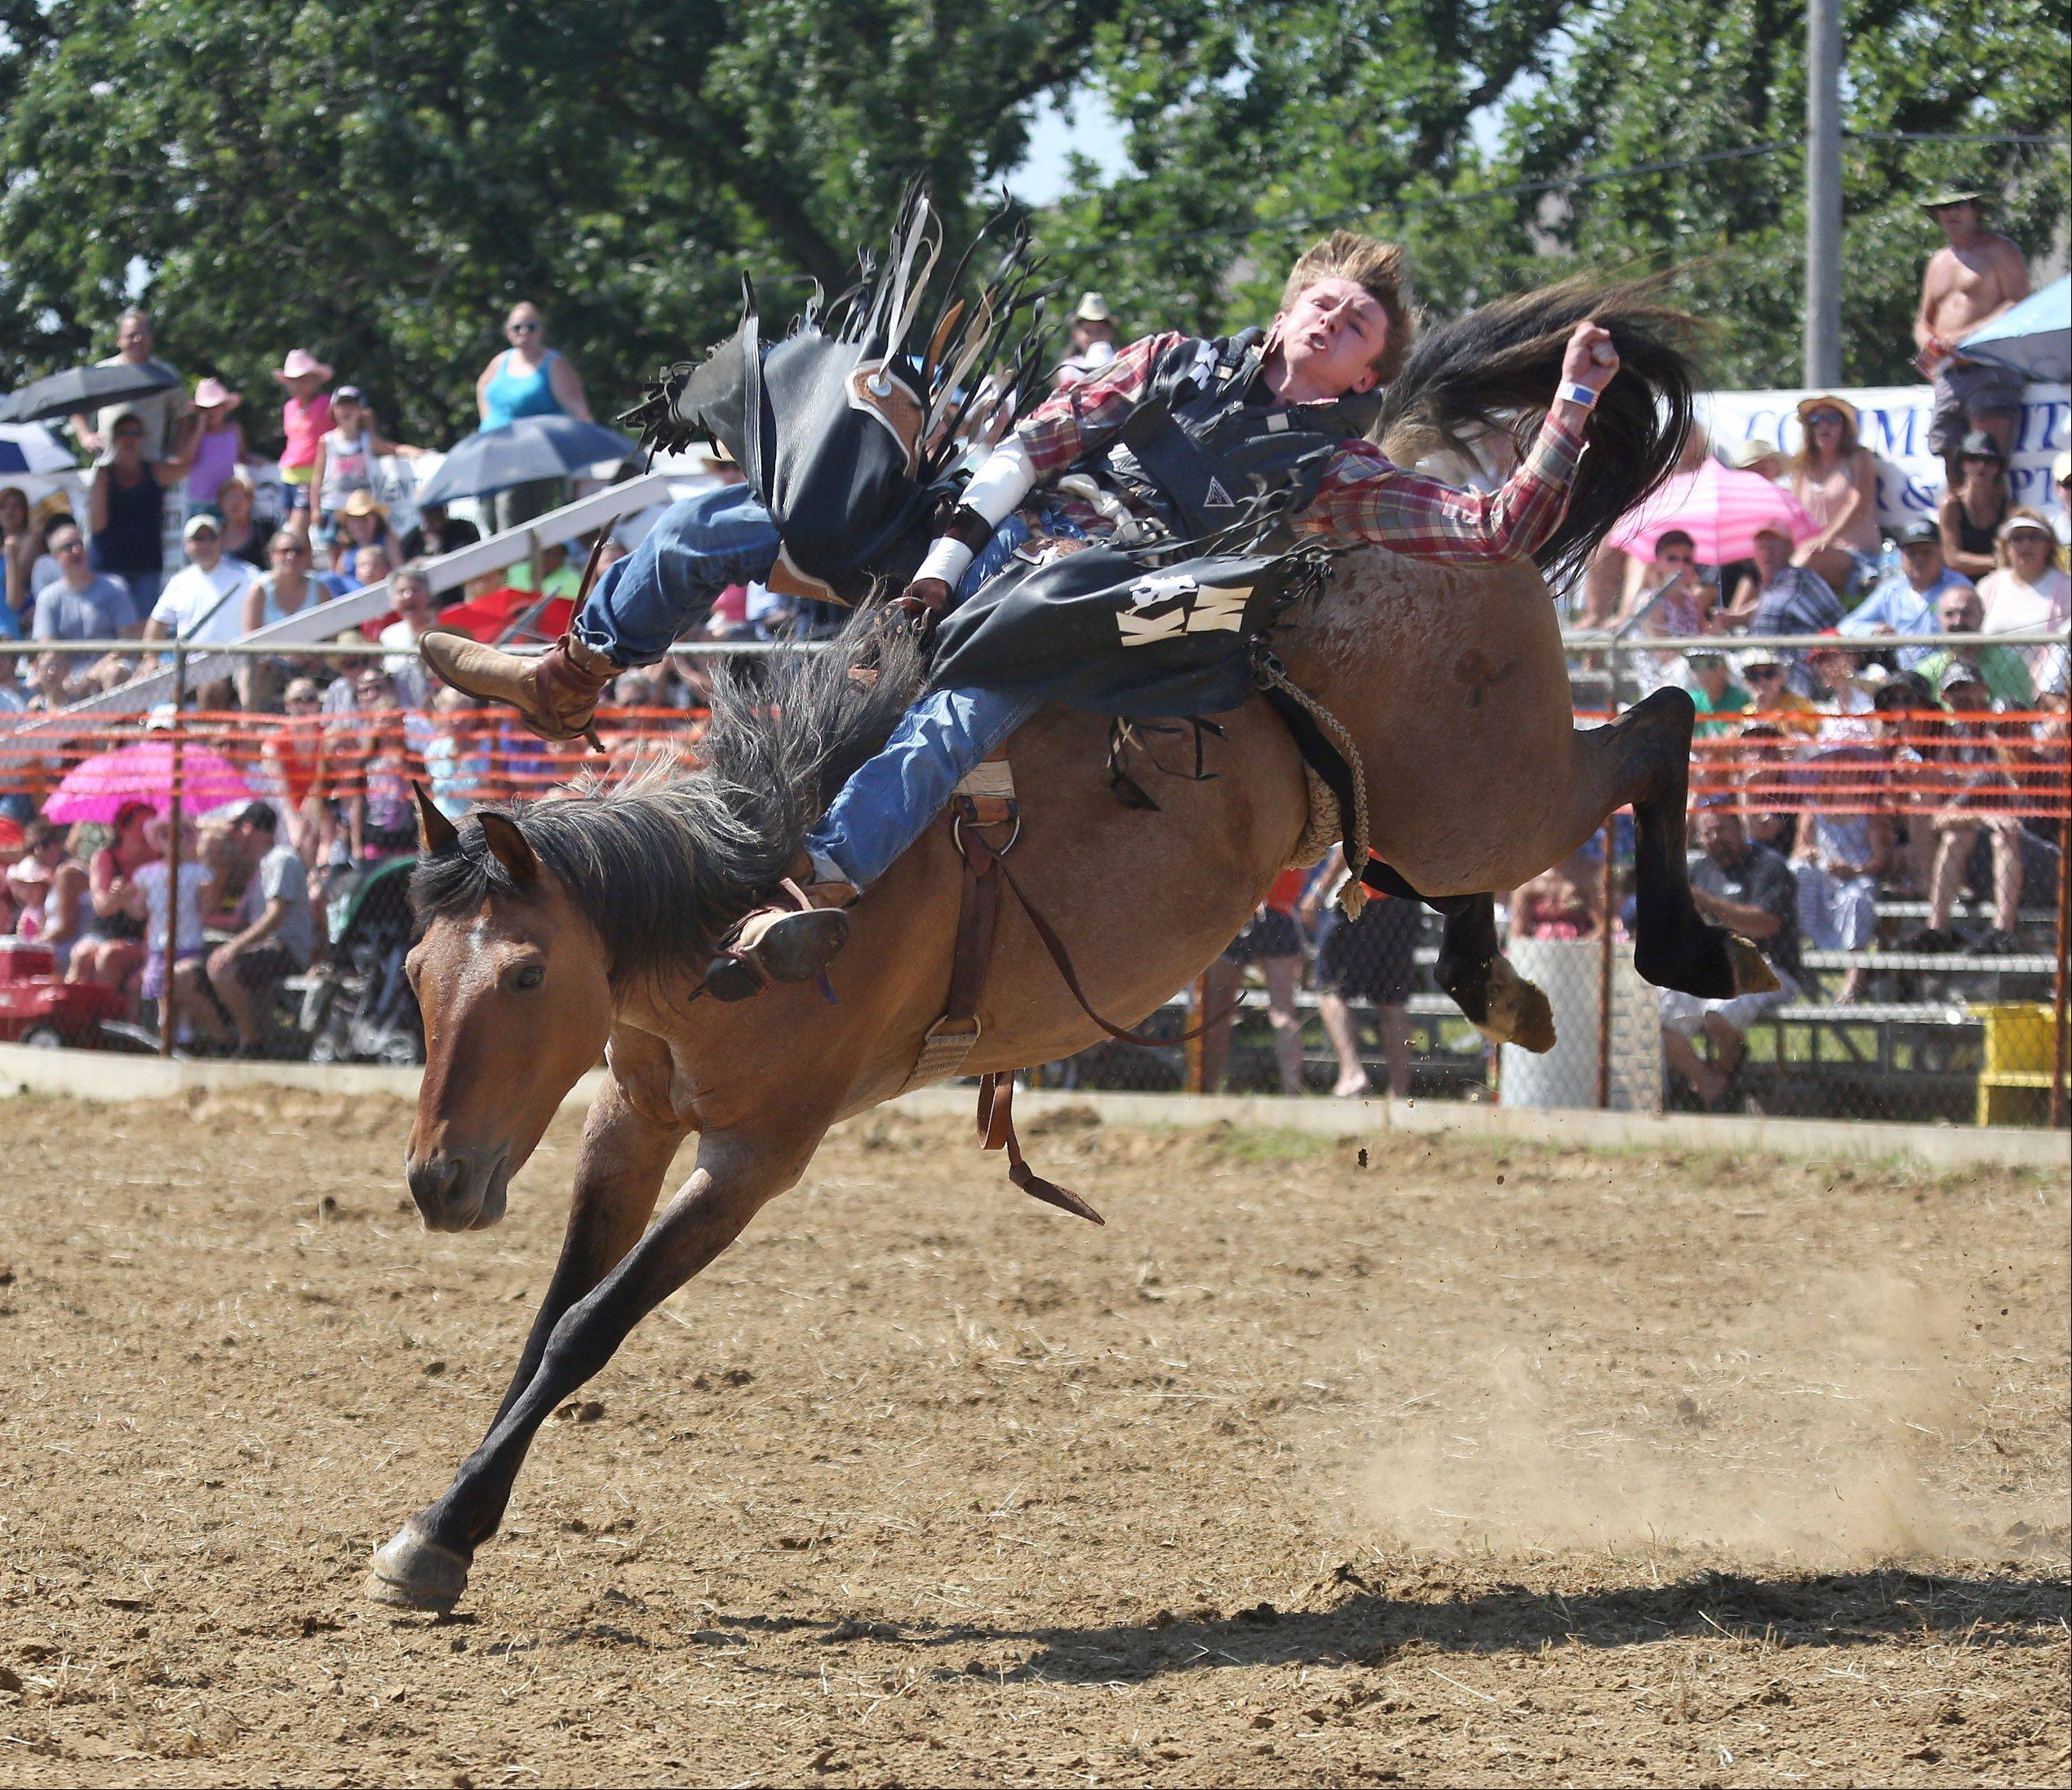 Images: The Wauconda Rodeo